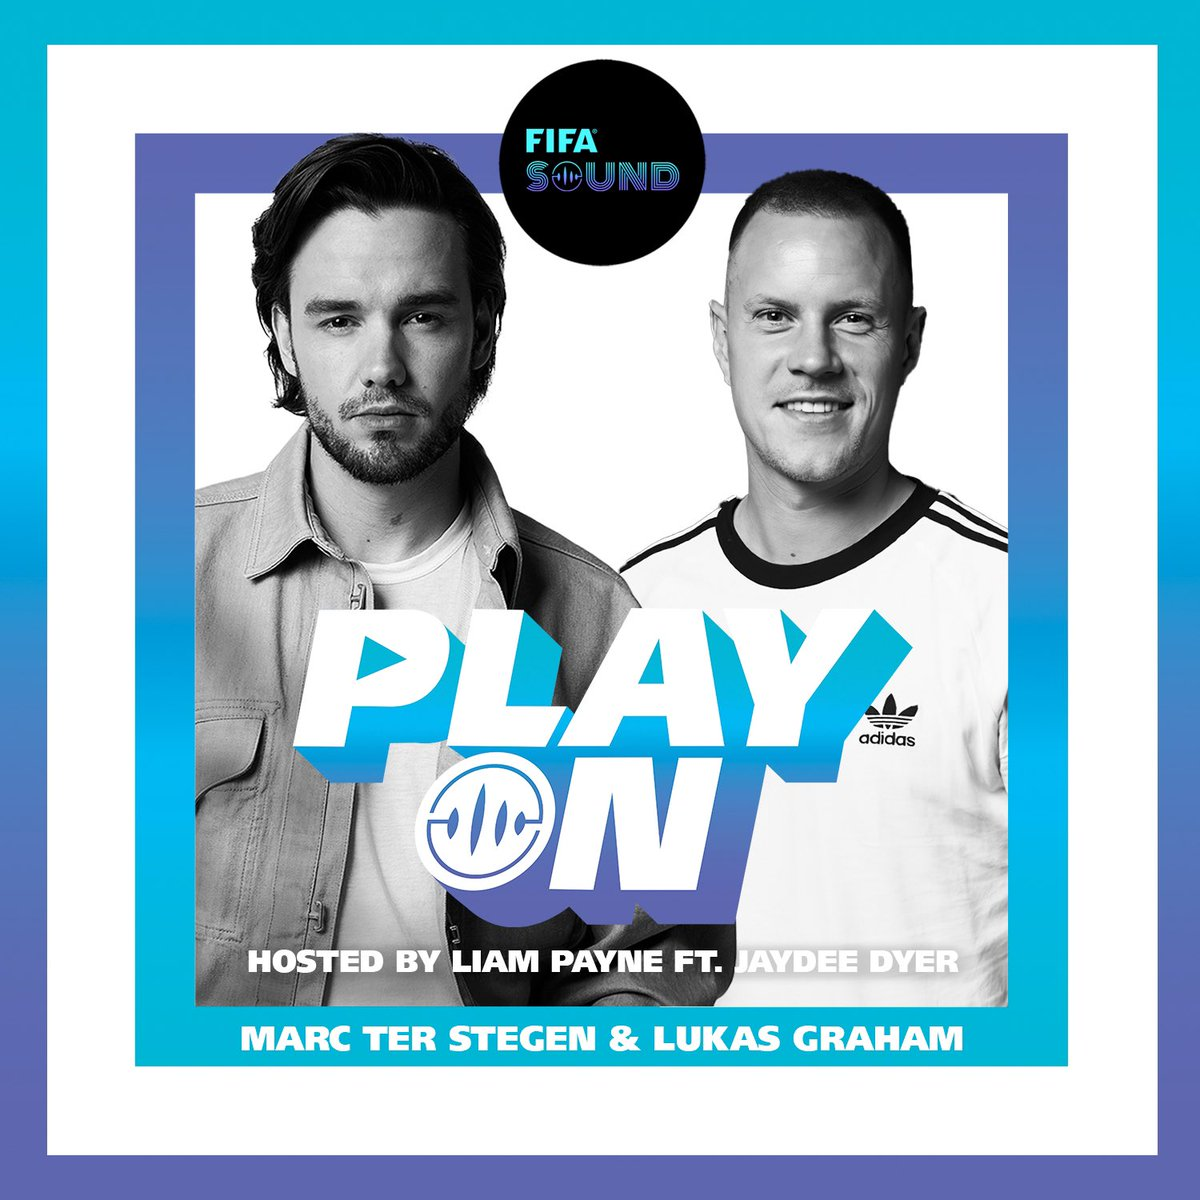 This week on Episode 6 of the FIFA PlayOn podcast I'm joined by @mterstegen1 & @LukasGraham. Tune in to hear us talk fatherhood, reminisce over 90s FIFA gameplay and more. Listen here 👉🏼 https://t.co/Dwq44exoOl #fifasound #playon https://t.co/H59WjMSKoa